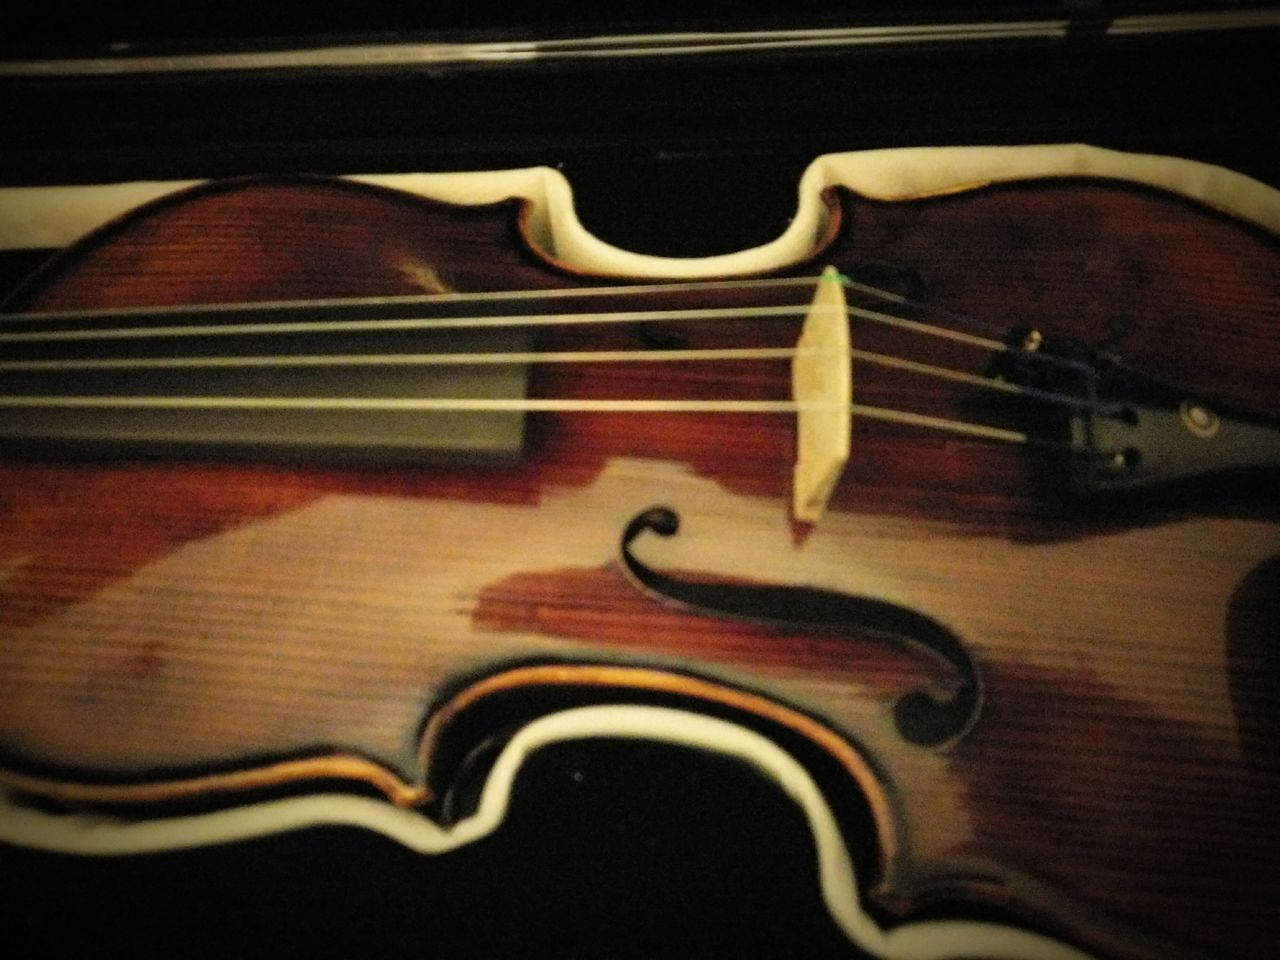 music, musical instrument, musical equipment, musical instrument string, arts culture and entertainment, string instrument, violin, indoors, wood - material, no people, guitar, close-up, woodwind instrument, classical music, day